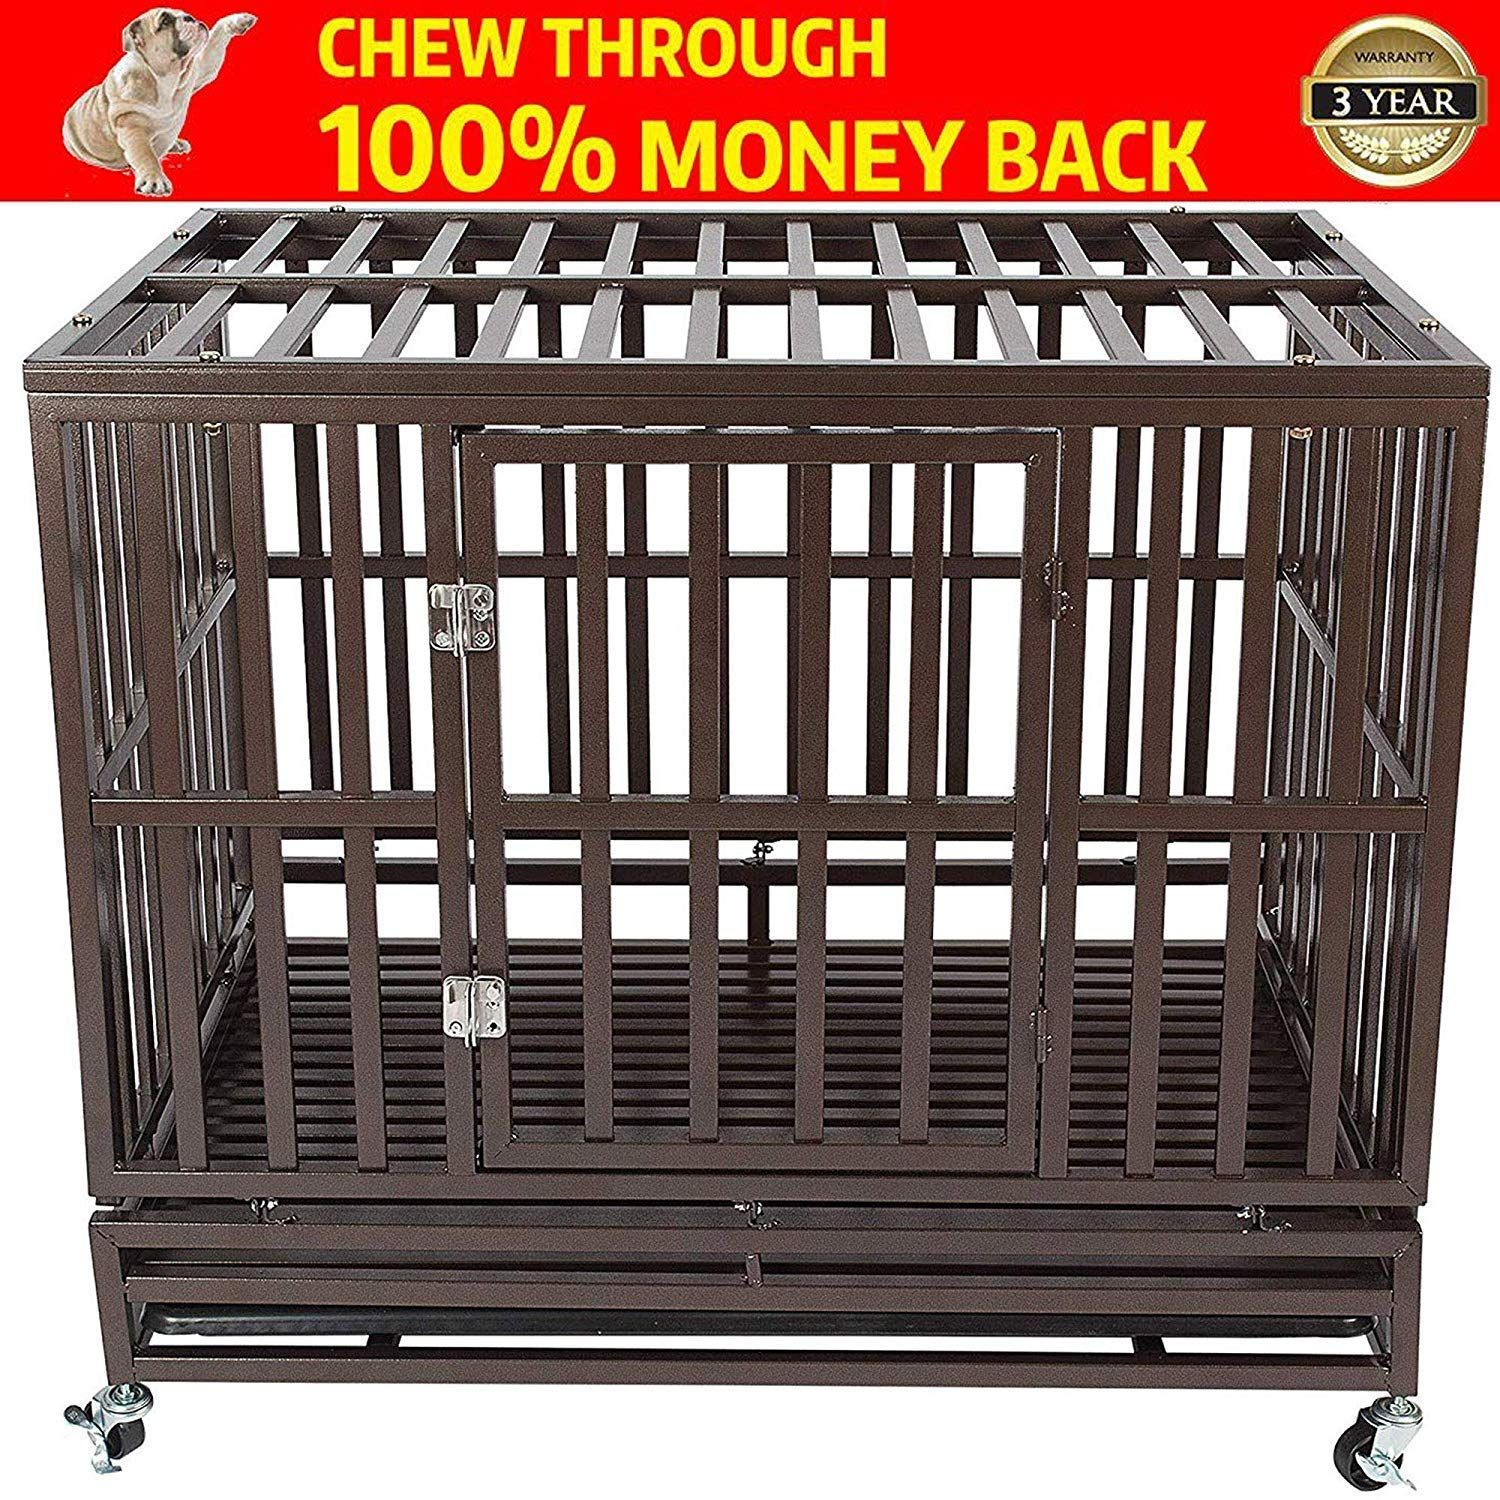 Heavy Duty Dog Crate Cage Kennel Playpen Large Strong Metal for Large Dogs Cats with Two Prevent Escape Lock and Four Lockable Wheels Easy to Assemble